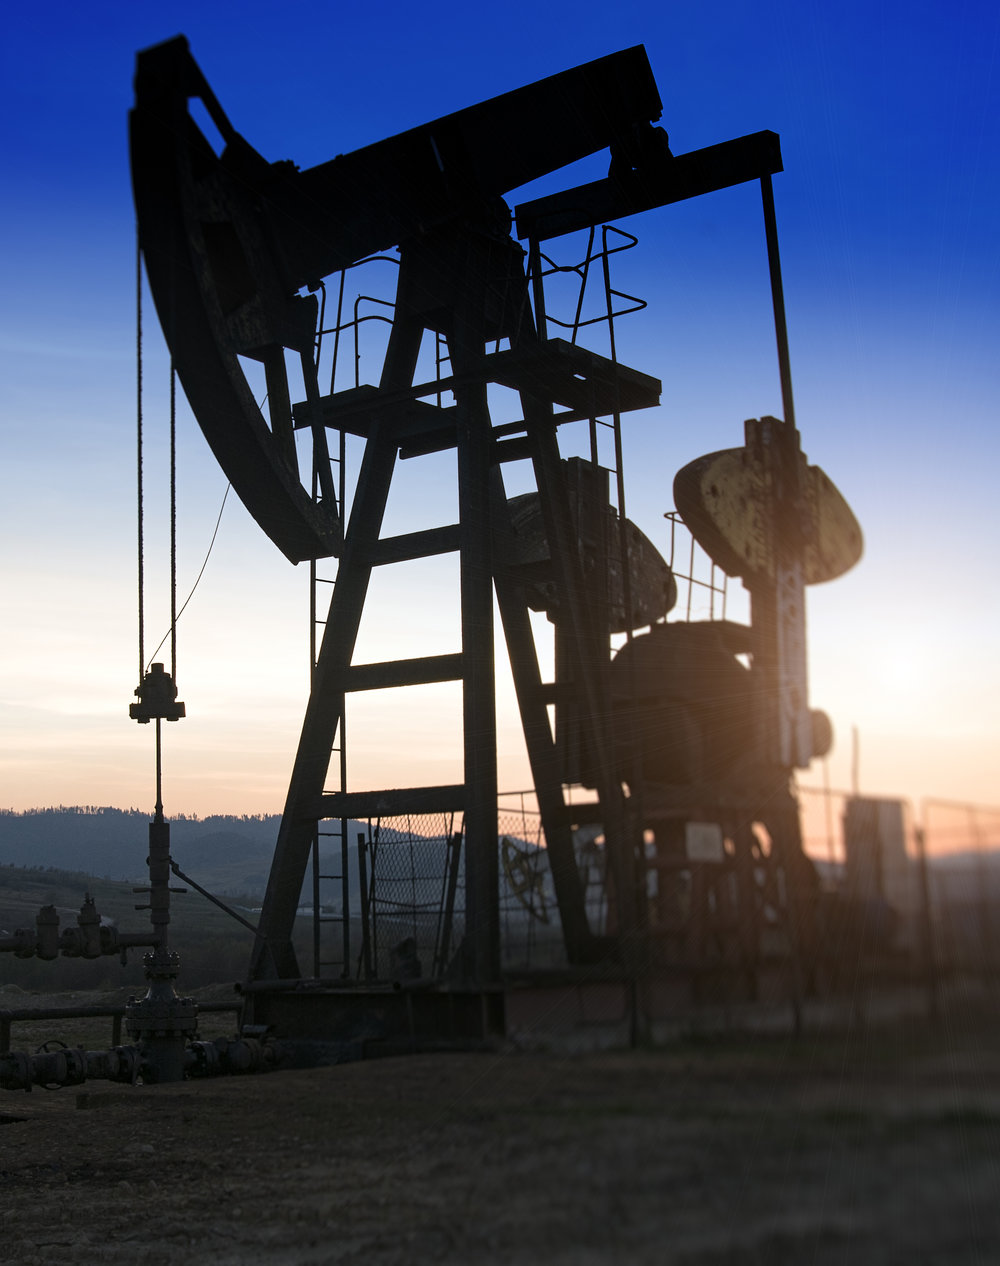 oil-pump-on-sunset-XLJQDR4.jpg